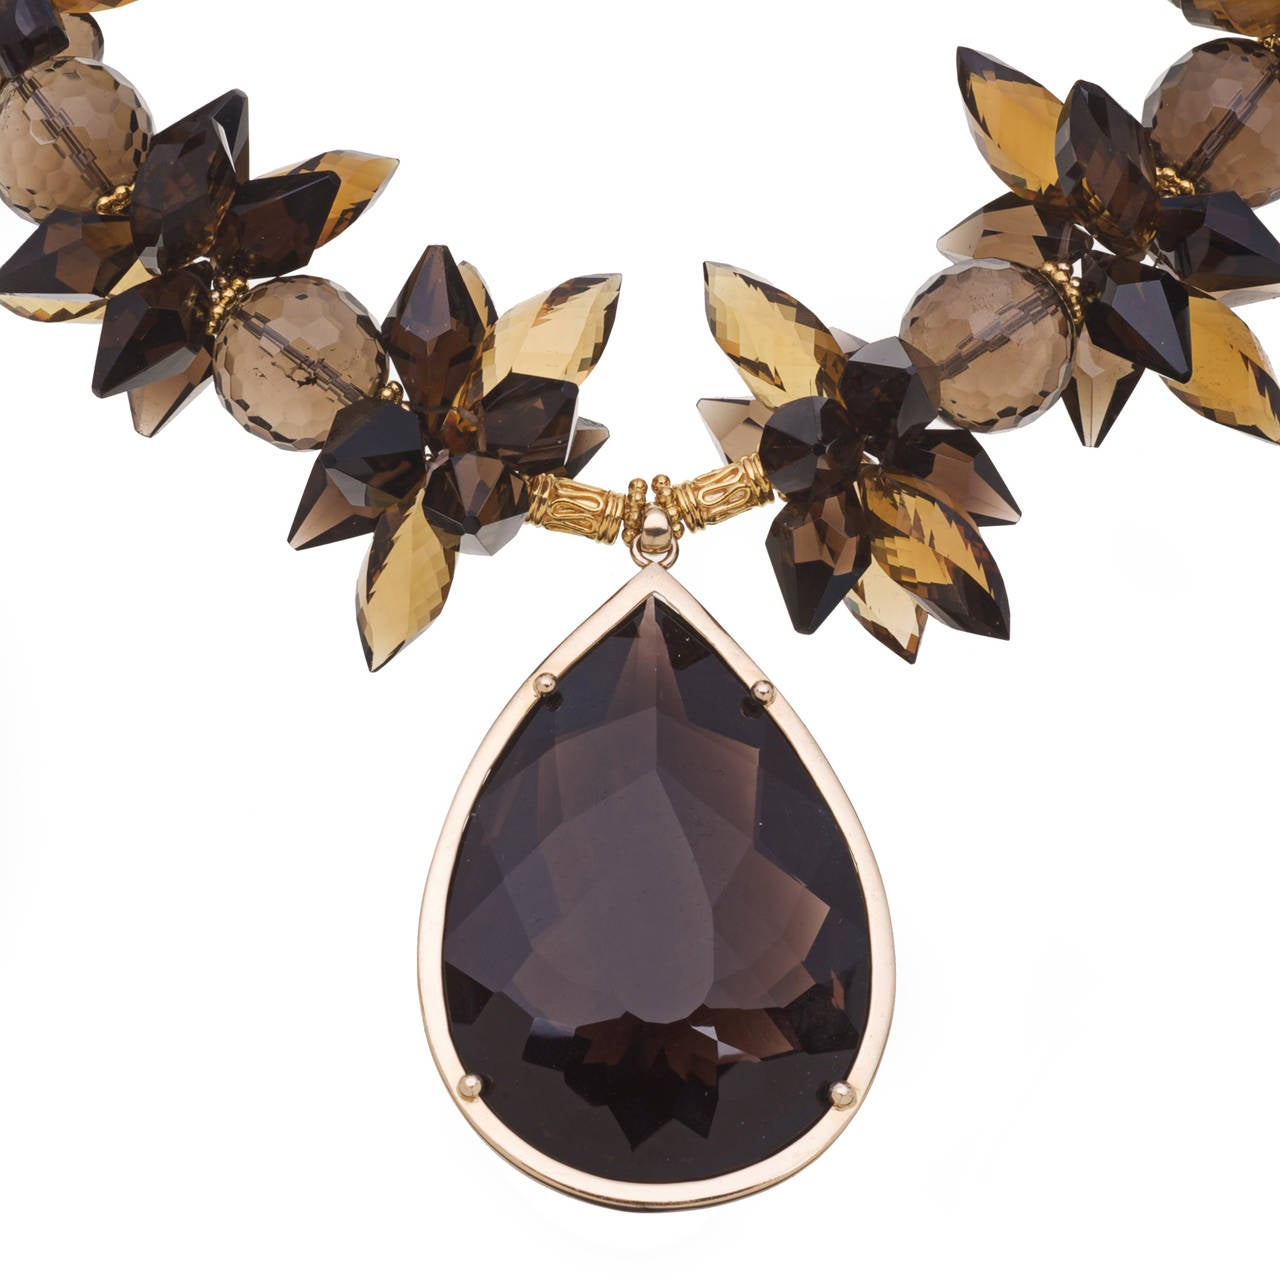 225 Carat Smoky Quartz Pendant Necklace, Whiskey Citrine, Smoky Quartz and 14K Gold